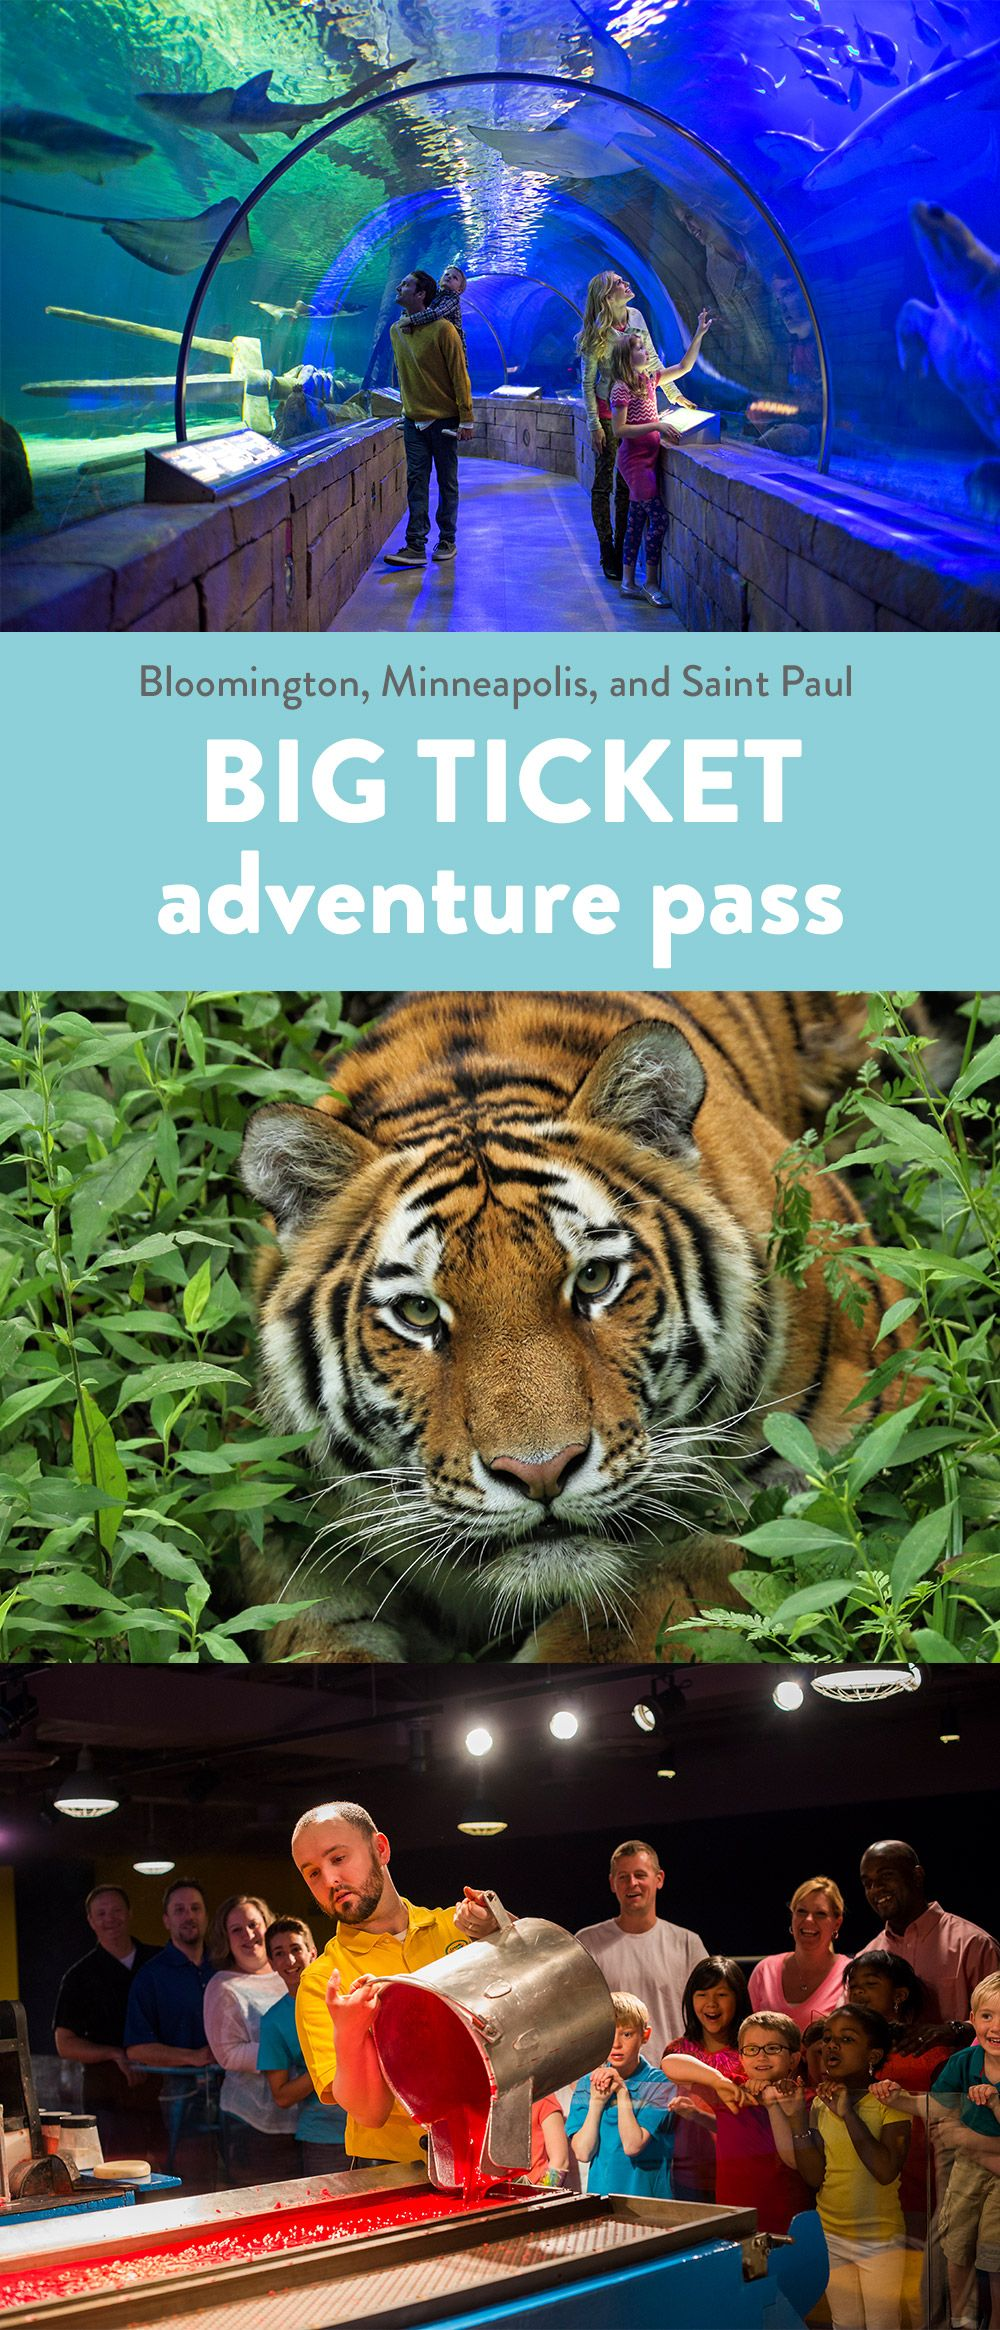 Purchase The Big Ticket For Discounts At Sea Life Minnesota